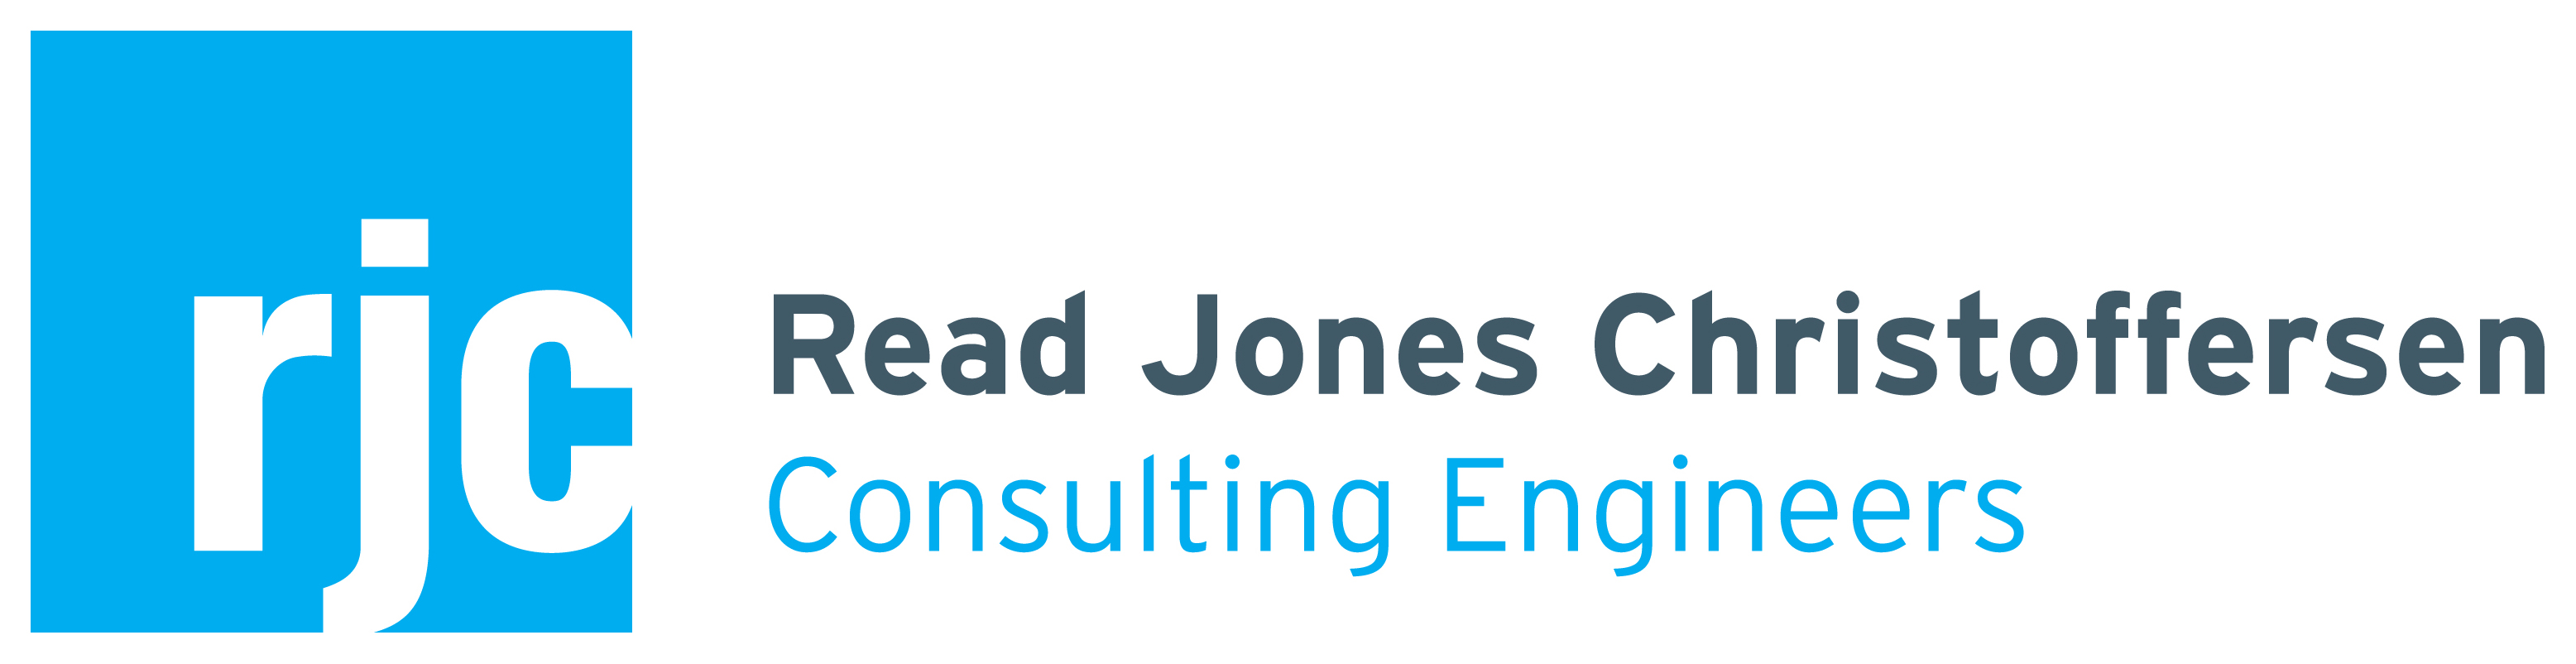 Read Jones Christoffersen Logo